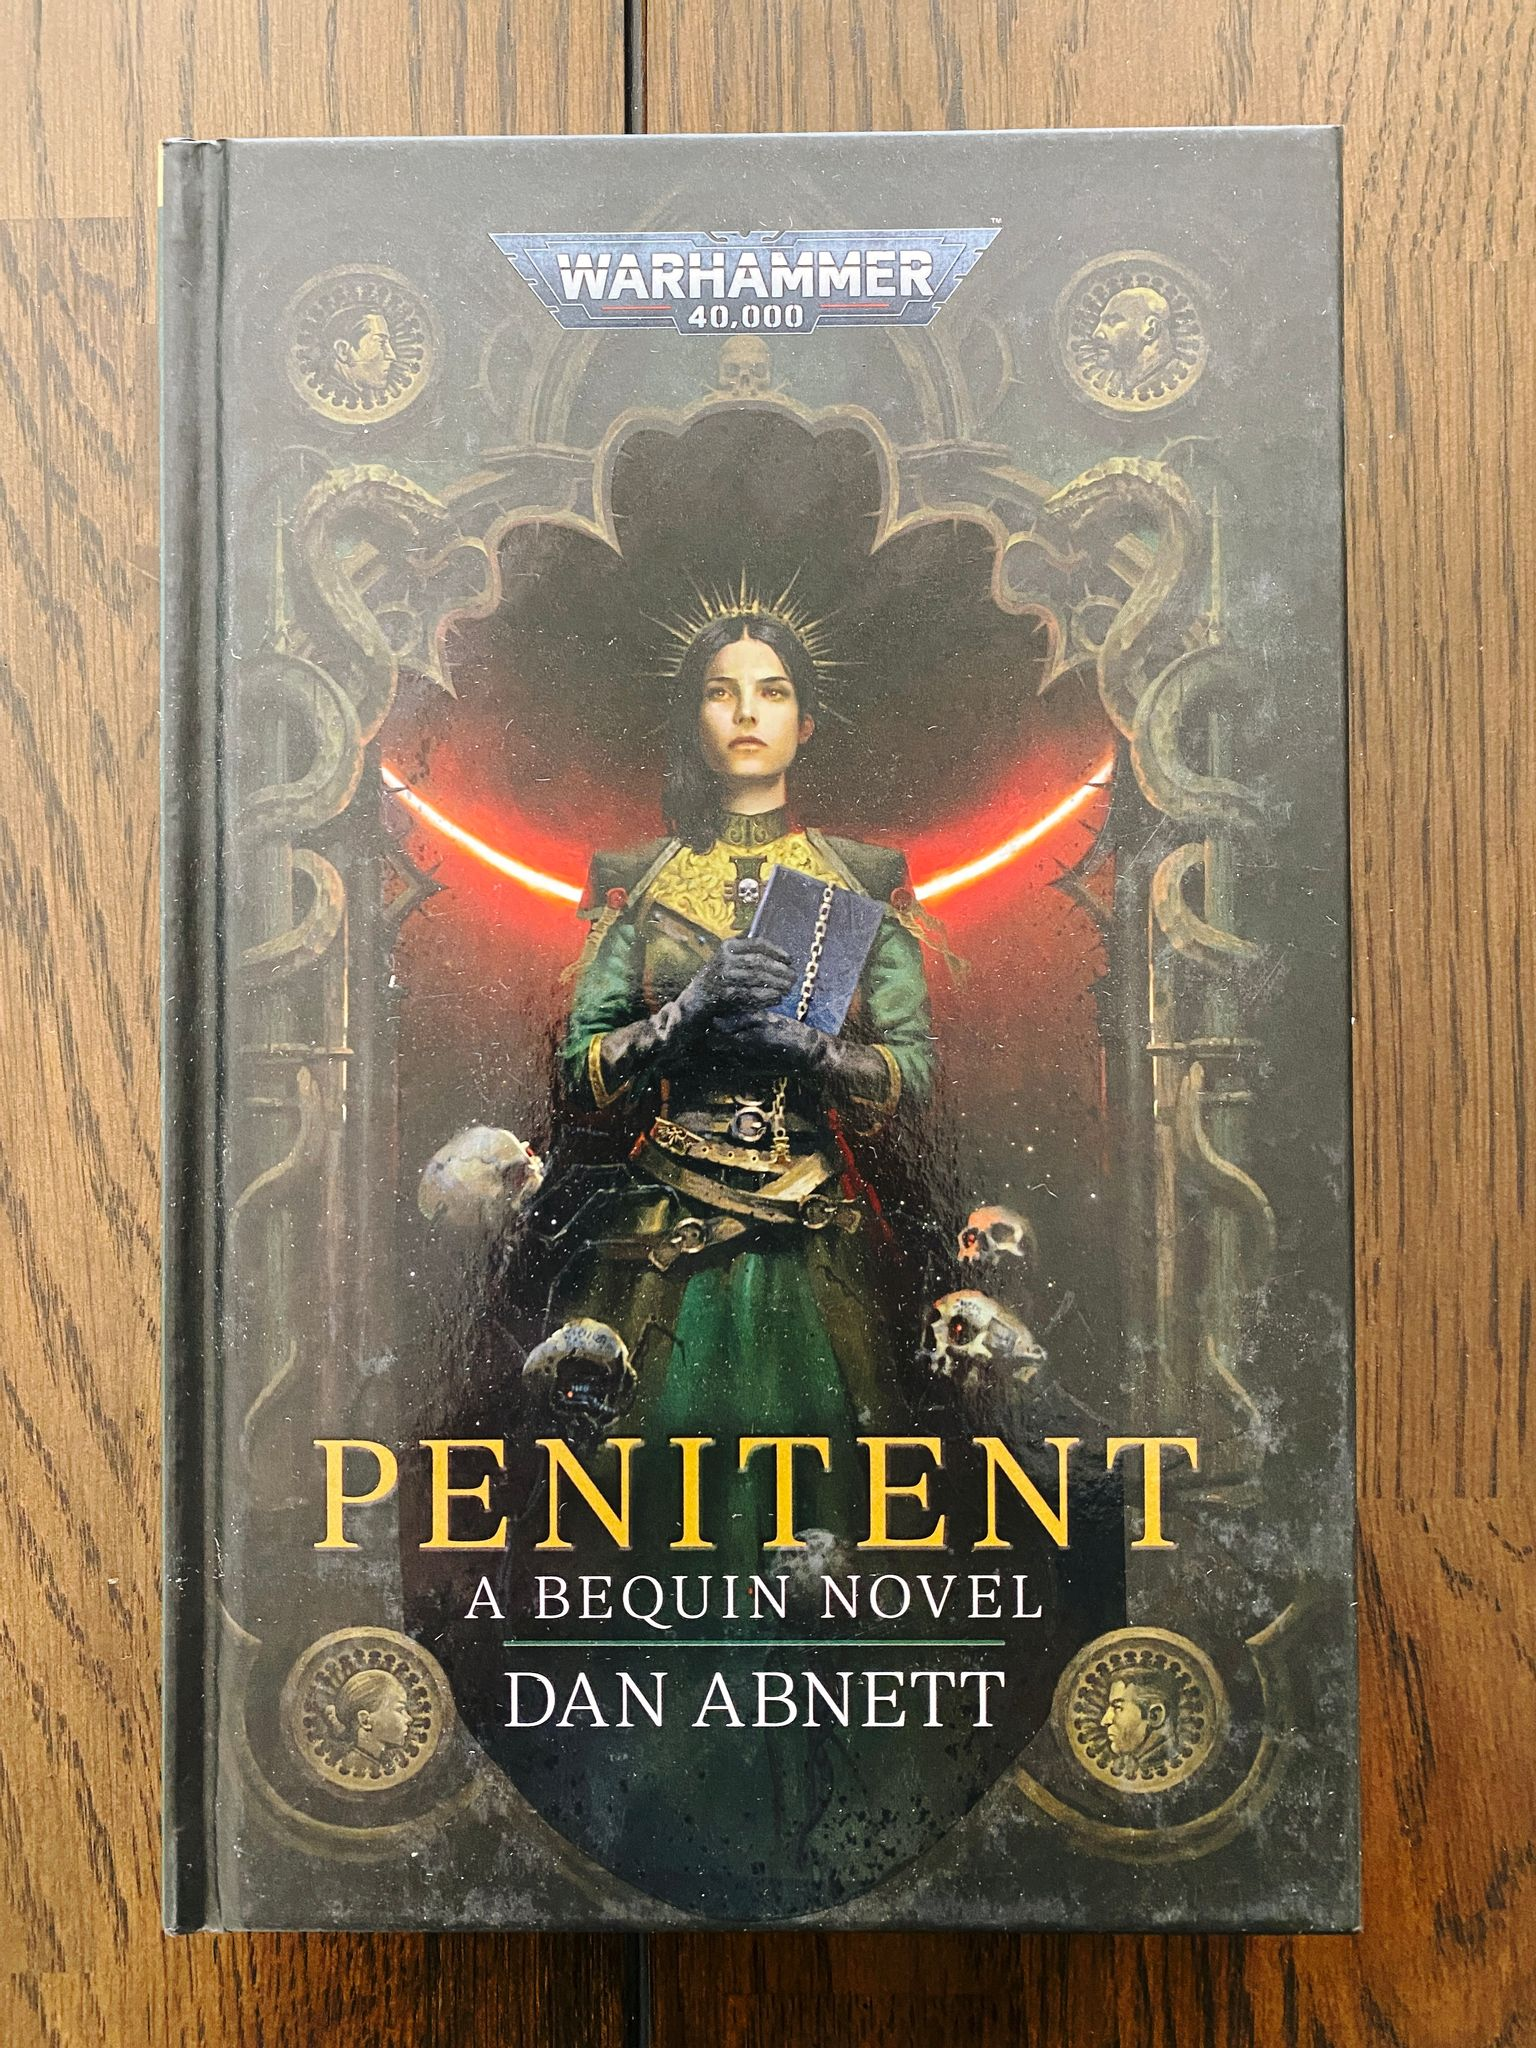 """A photo of Dan Abnett's Warhammer 40,000 novel """"Penitent"""" that was just released this month."""